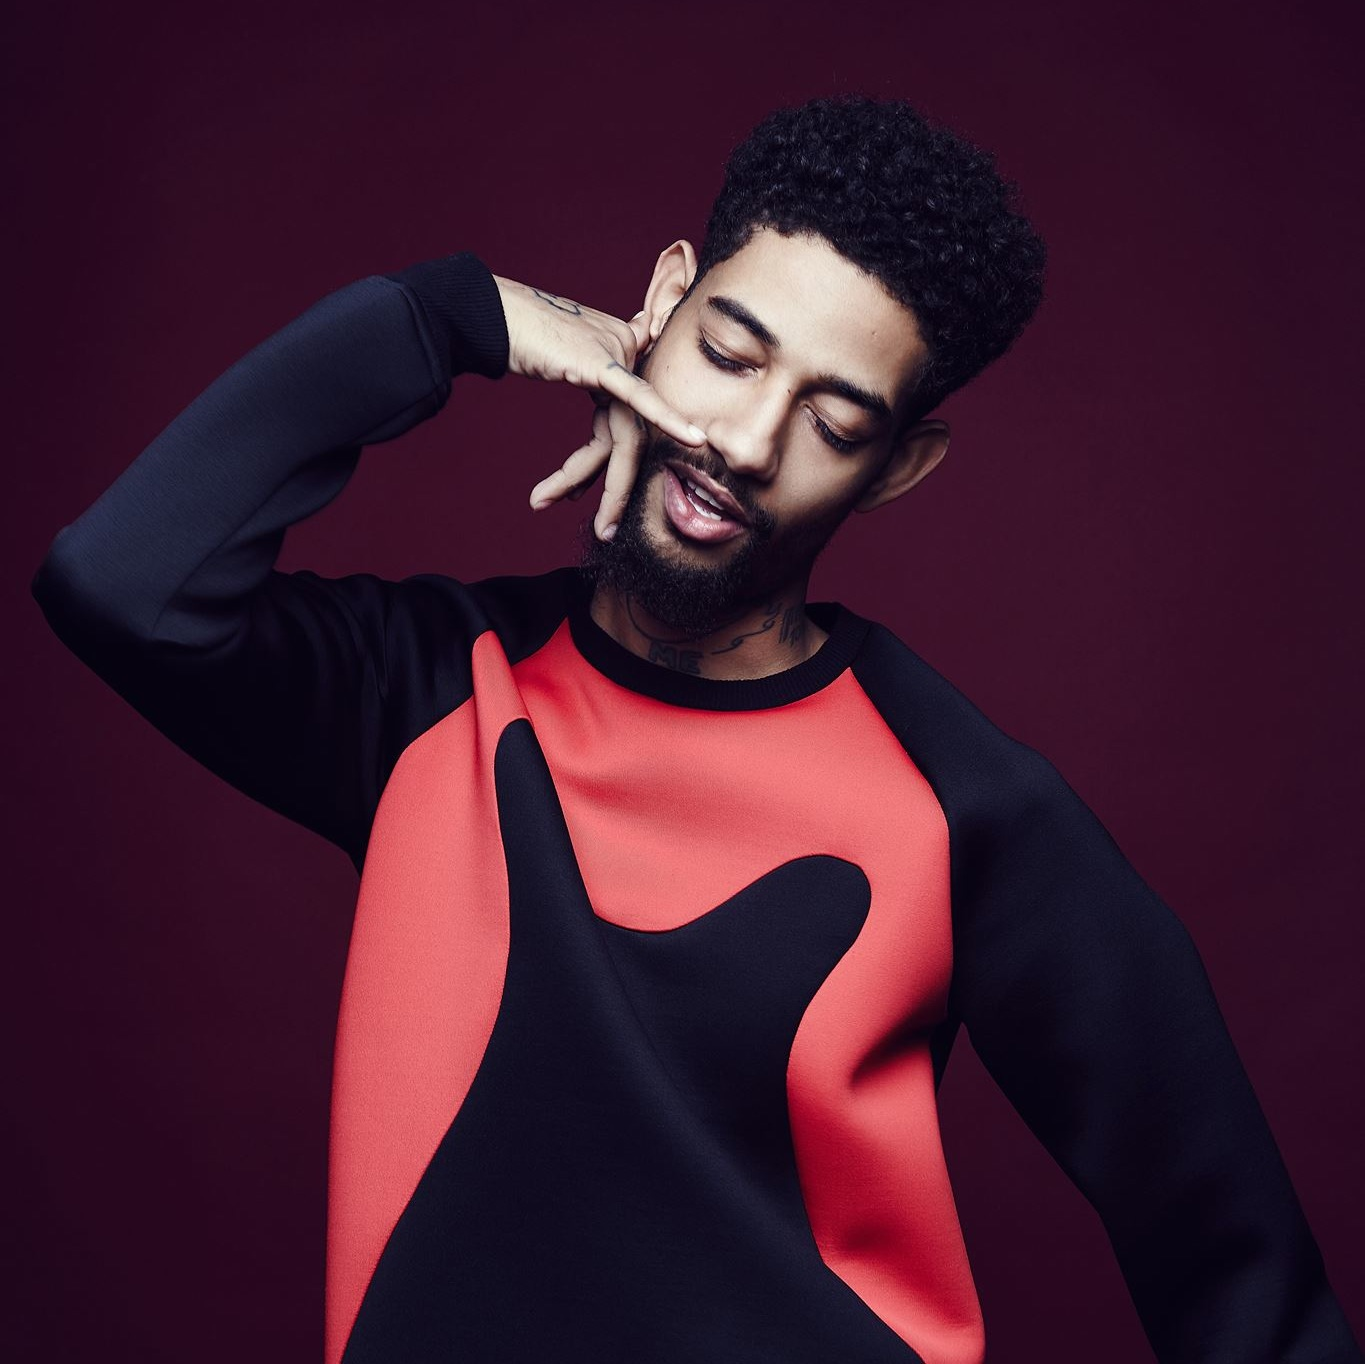 pnb rock latest album download